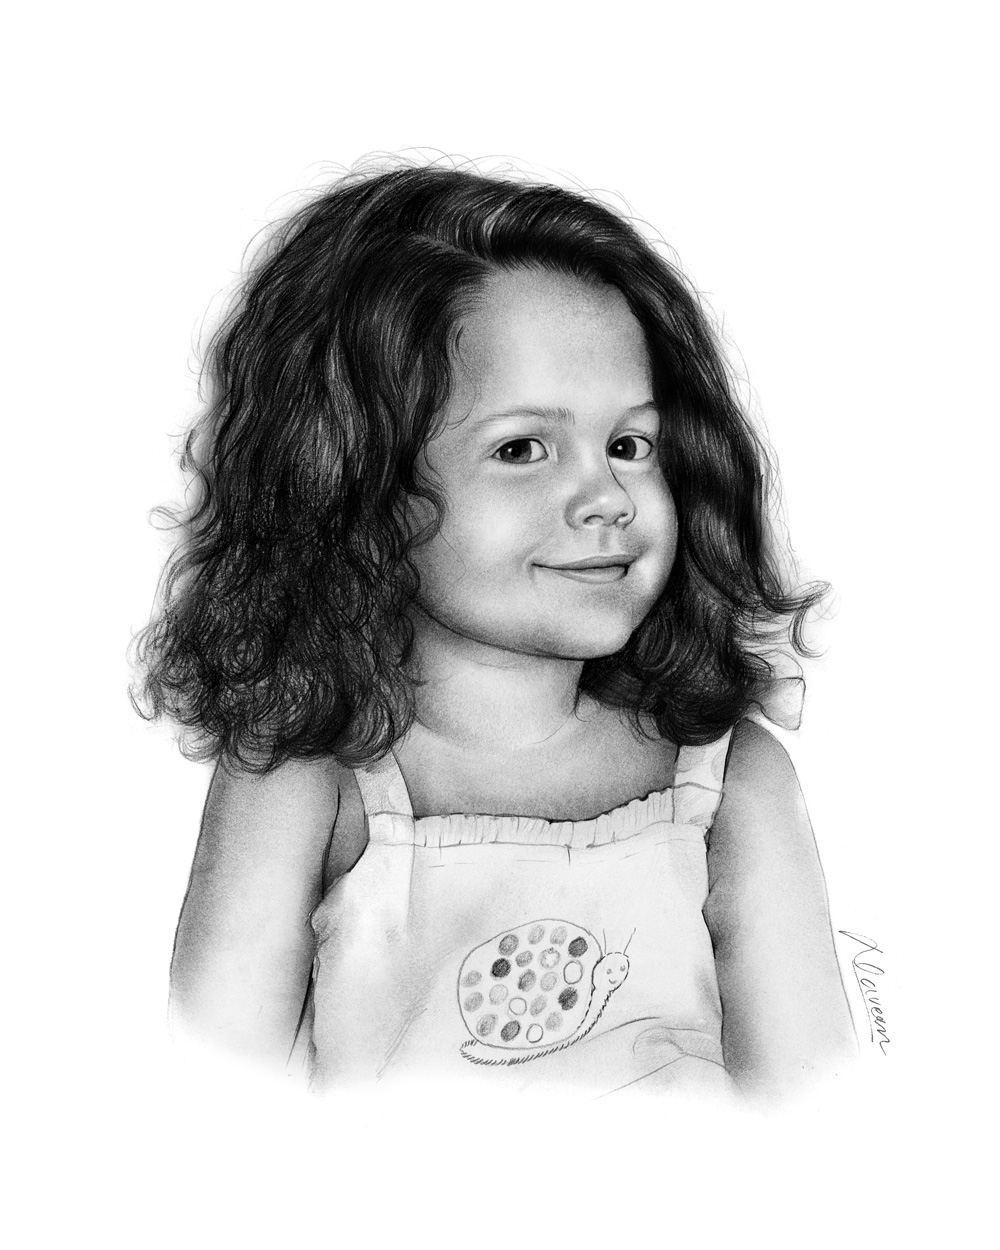 Pencil Sketch Portraits From A Photo Art Gallery Examples